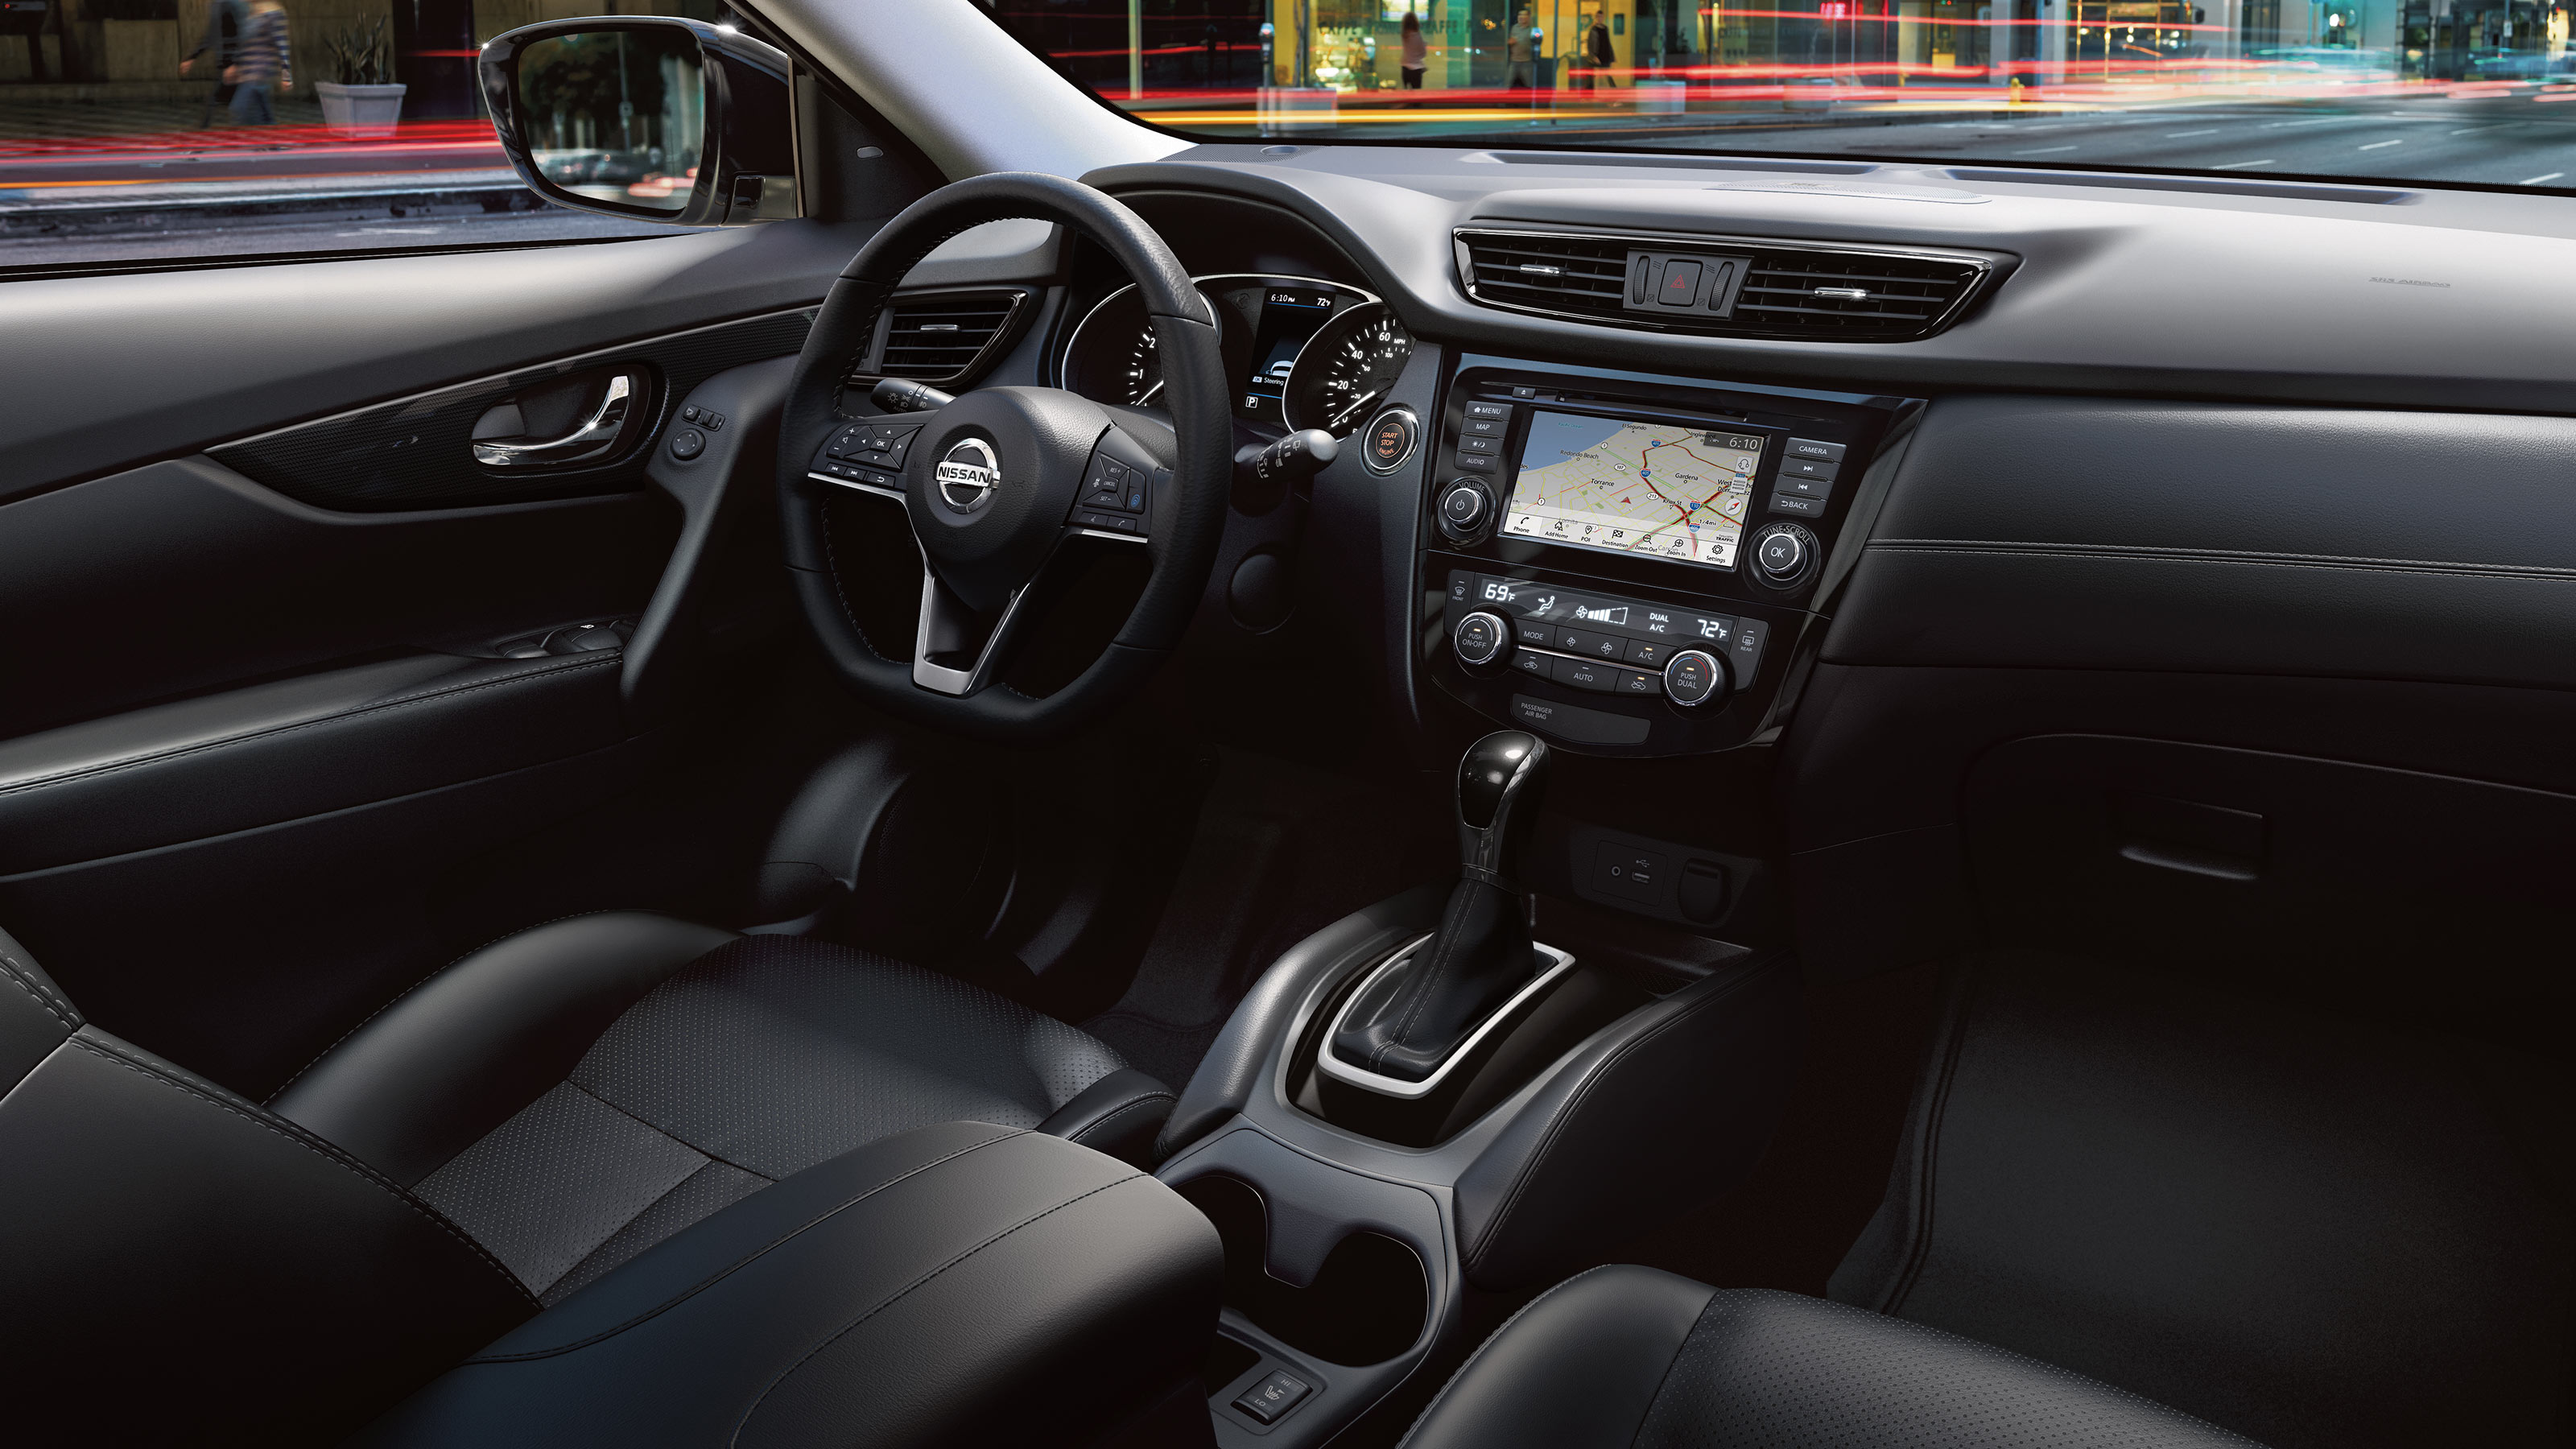 Steering Wheel of the 2020 Nissan Rogue